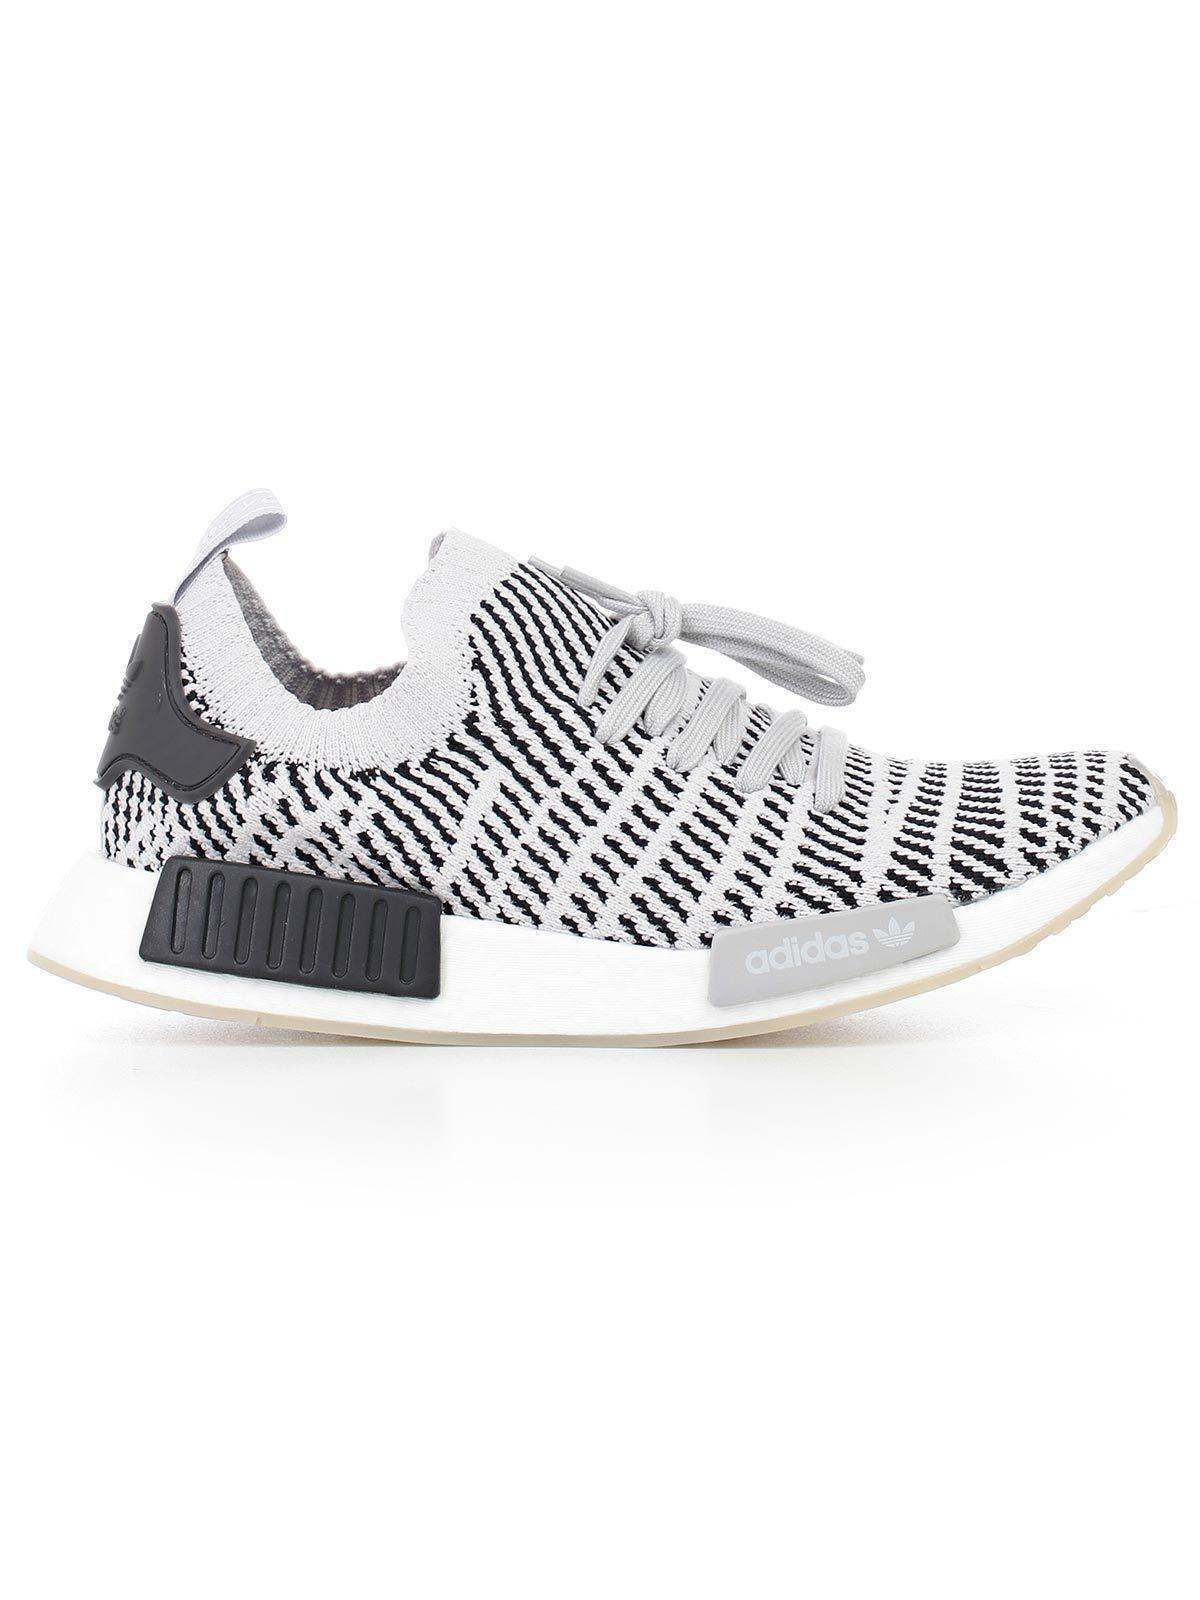 3aff77fd8 Adidas Originals Men s Nmd Runner R1 Stlt Primeknit Casual Shoes ...